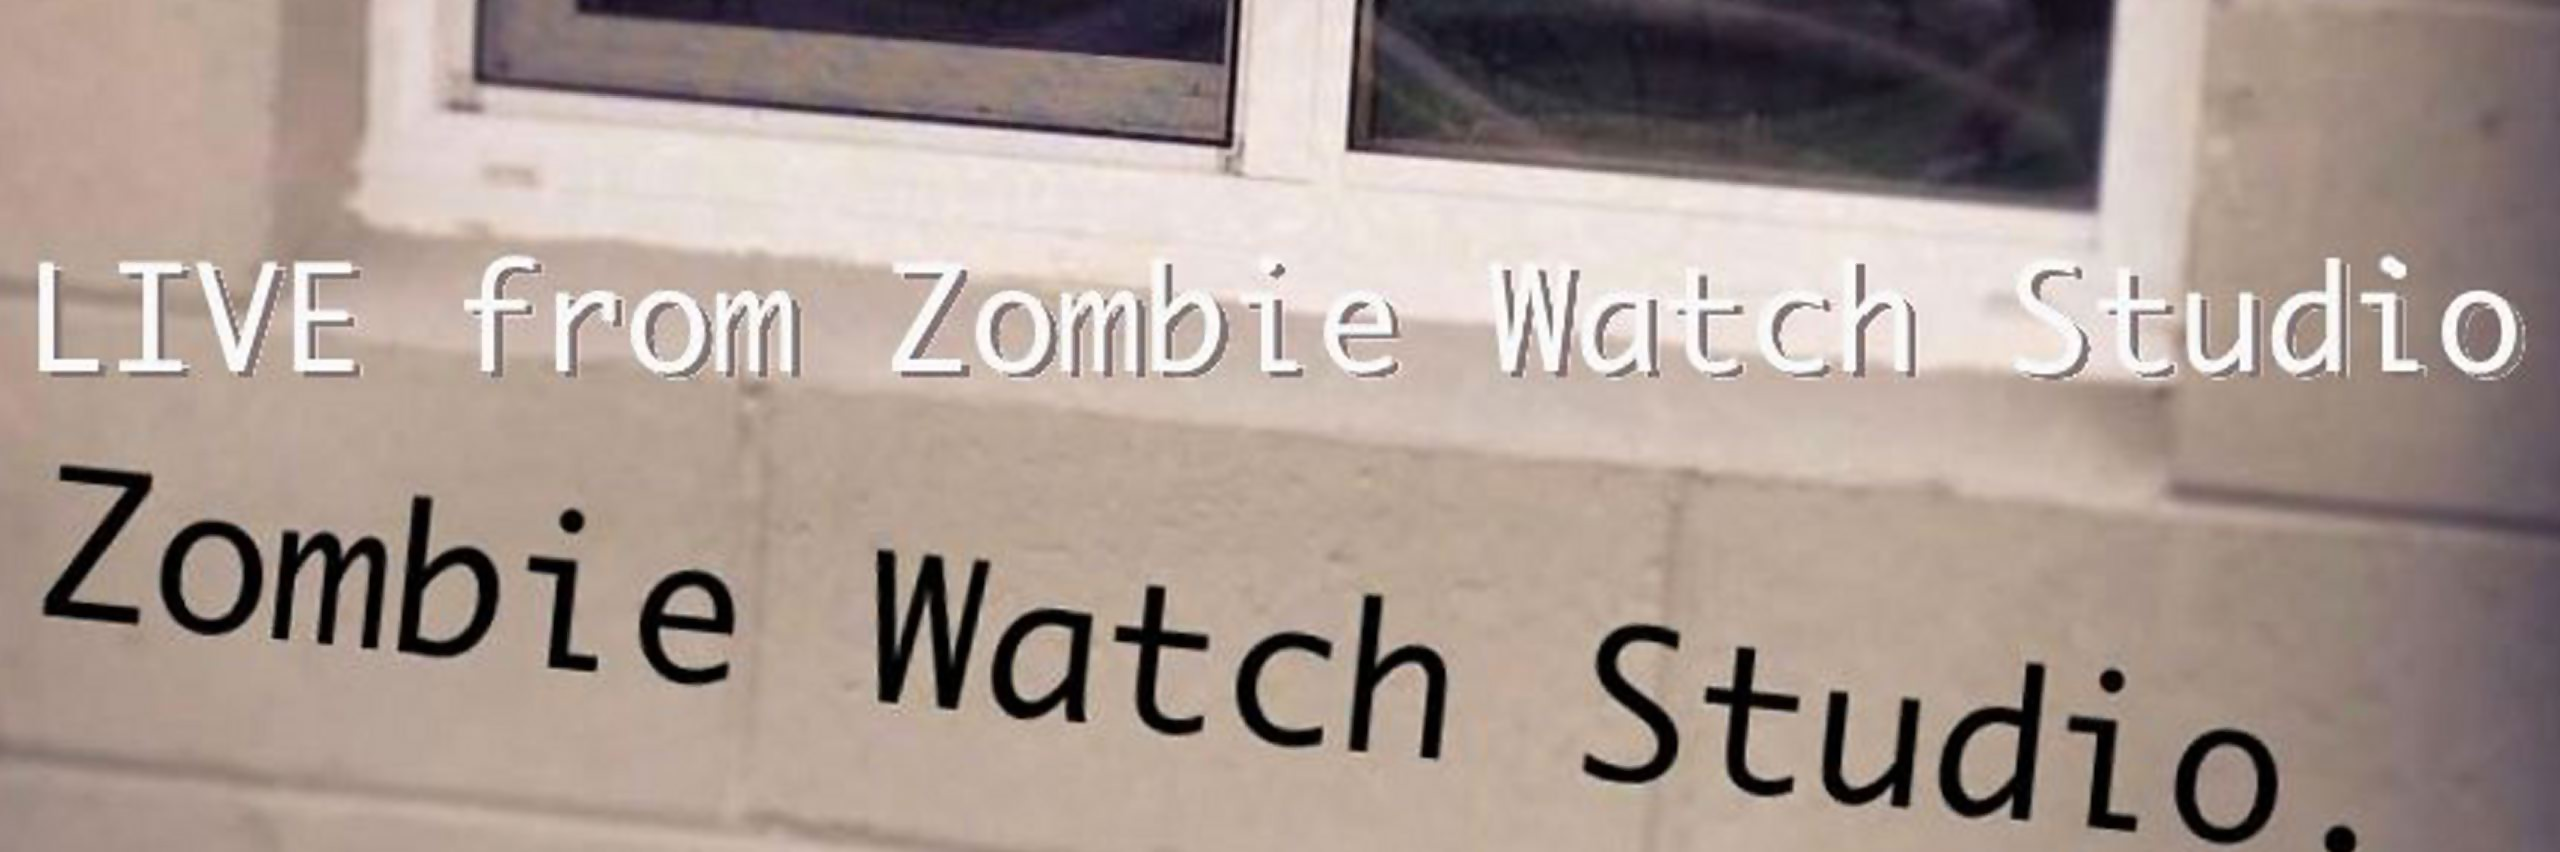 Live from Zombie Watch Studio